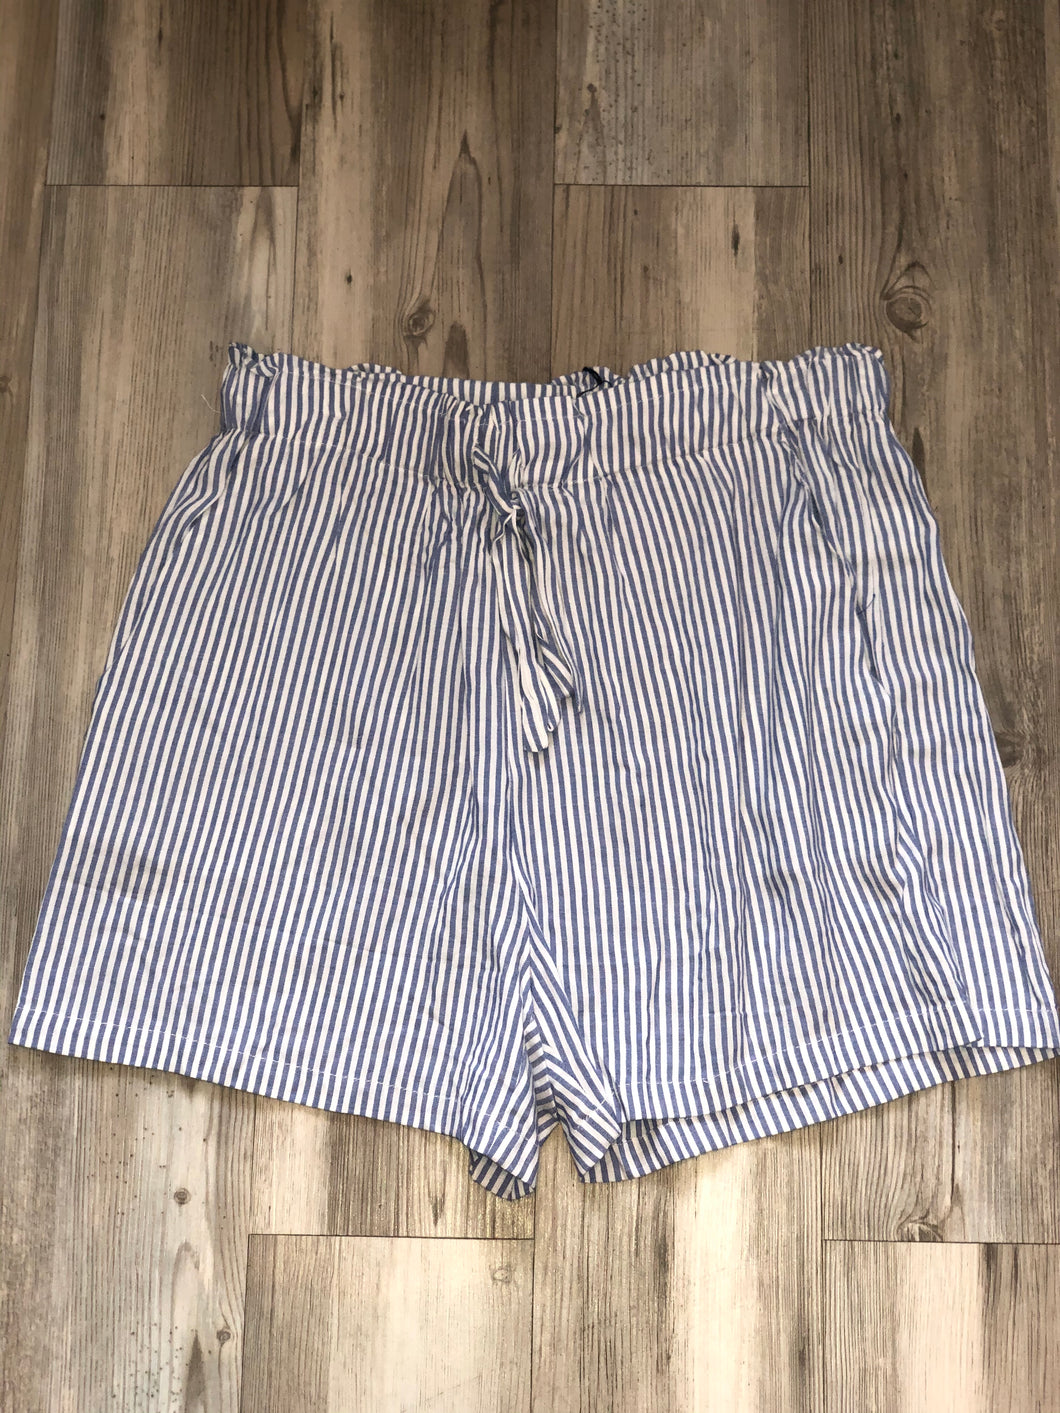 Blue/white stripped shorts